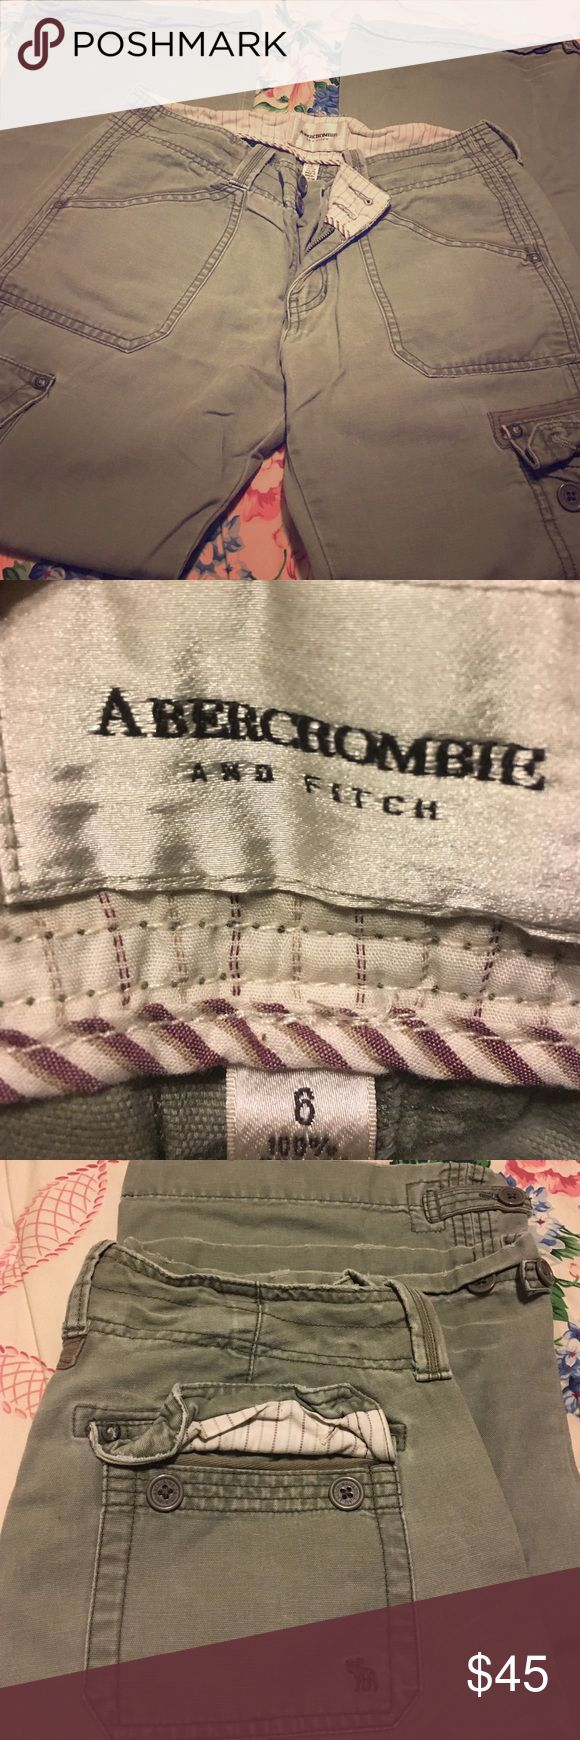 Abercrombie and Fitch size 6 olive green Olive green khaki pants Abercrombie & Fitch Pants Trousers